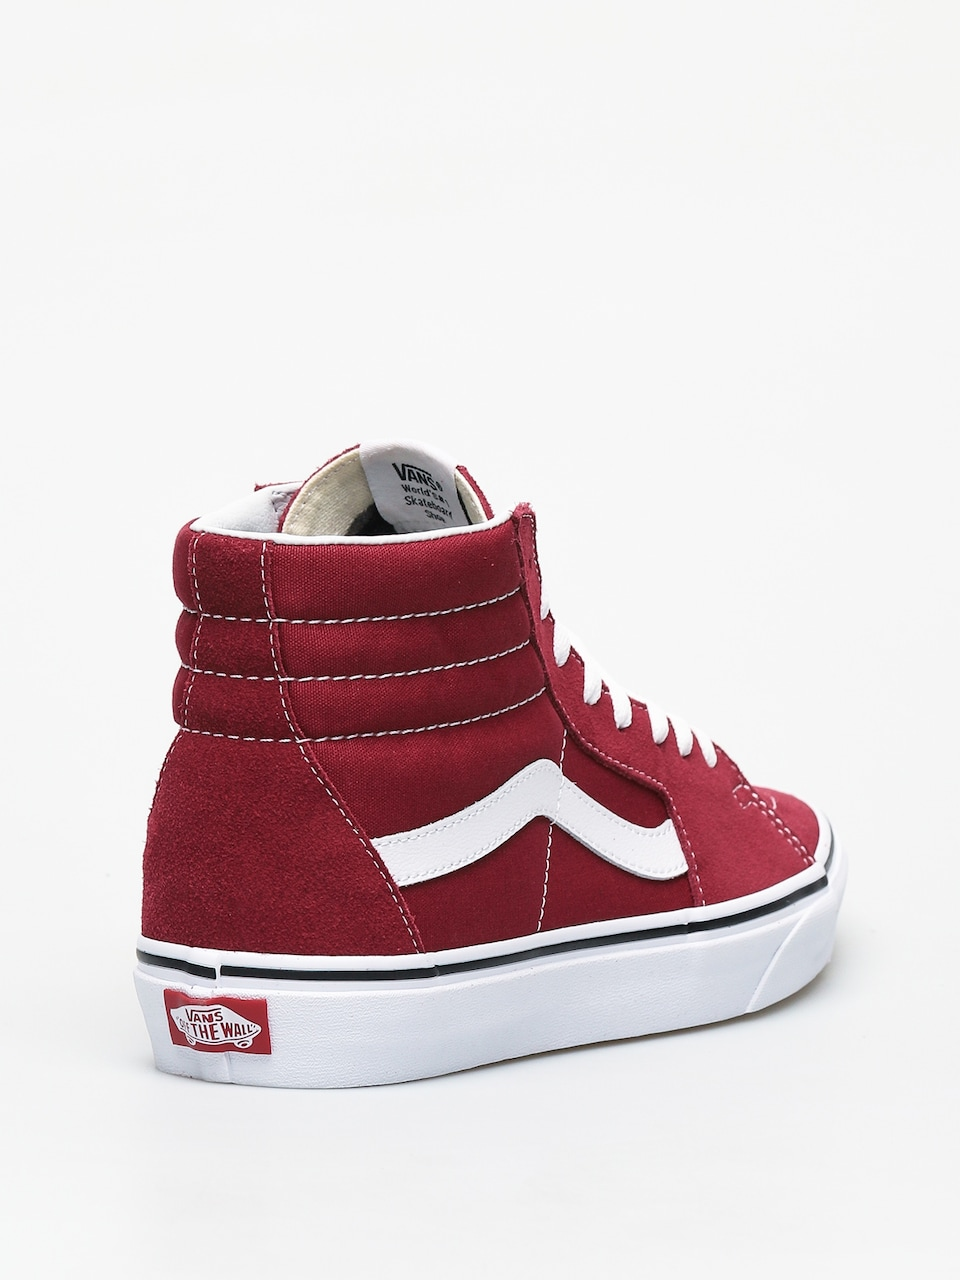 WALL RED & WHT HIGH TOP SKATE SHOES